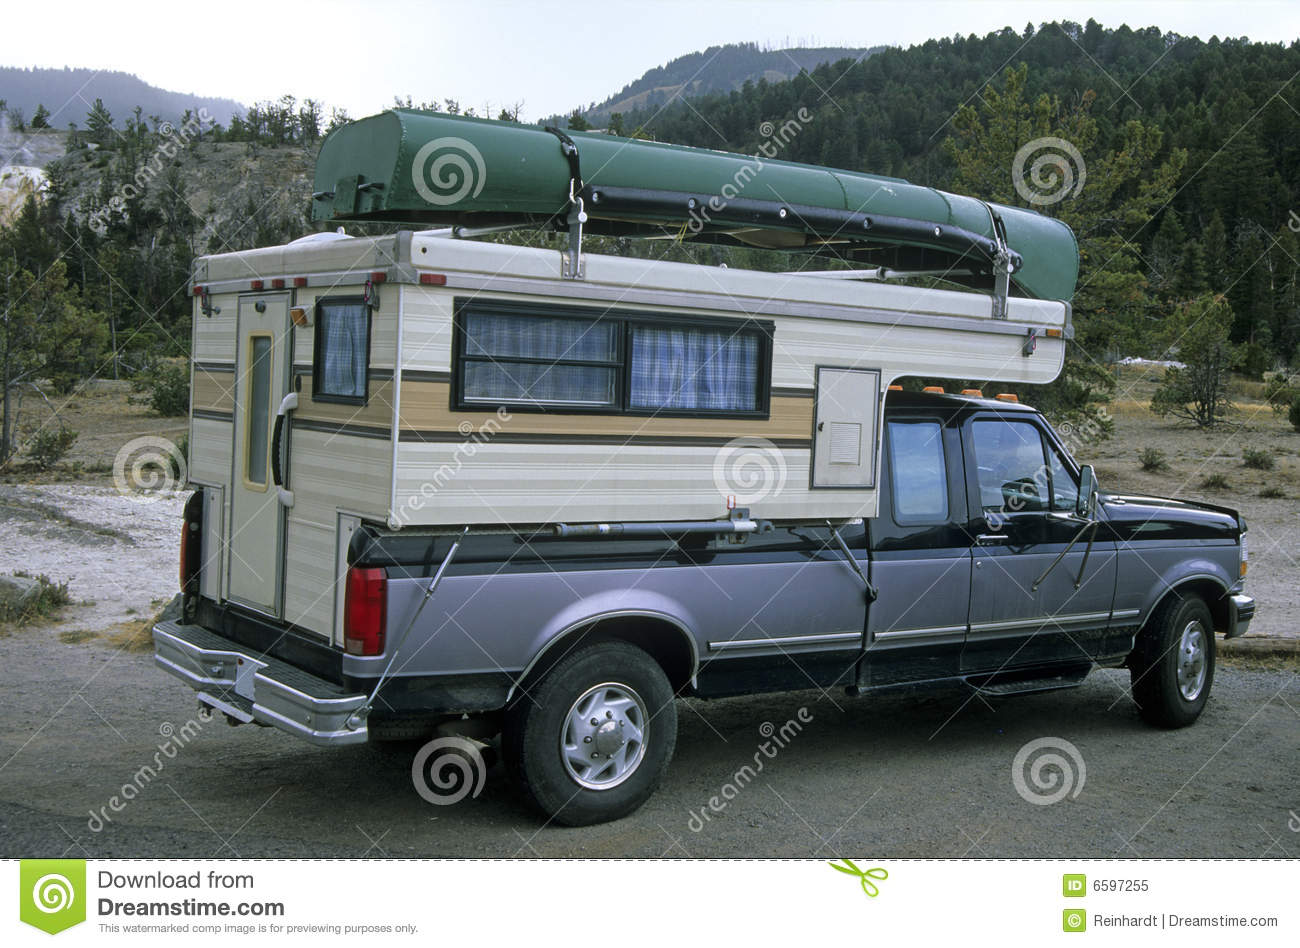 Truck camper 2 stock image. Image of boot, auto, freedom ...